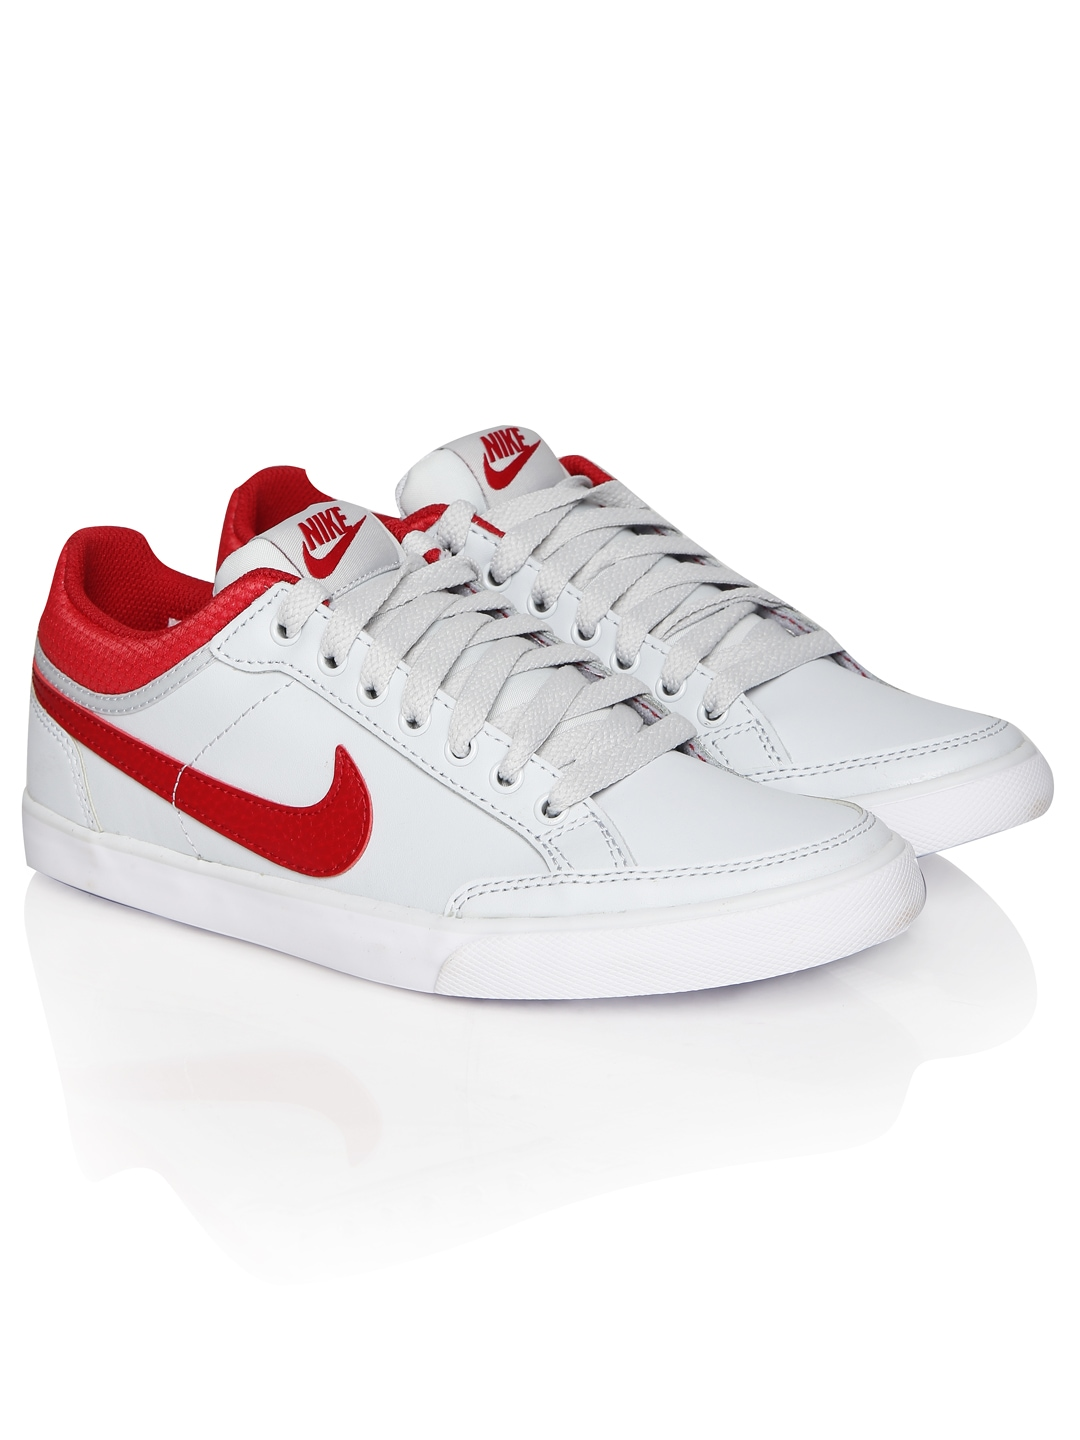 8c00da82734 nike casual shoes for men